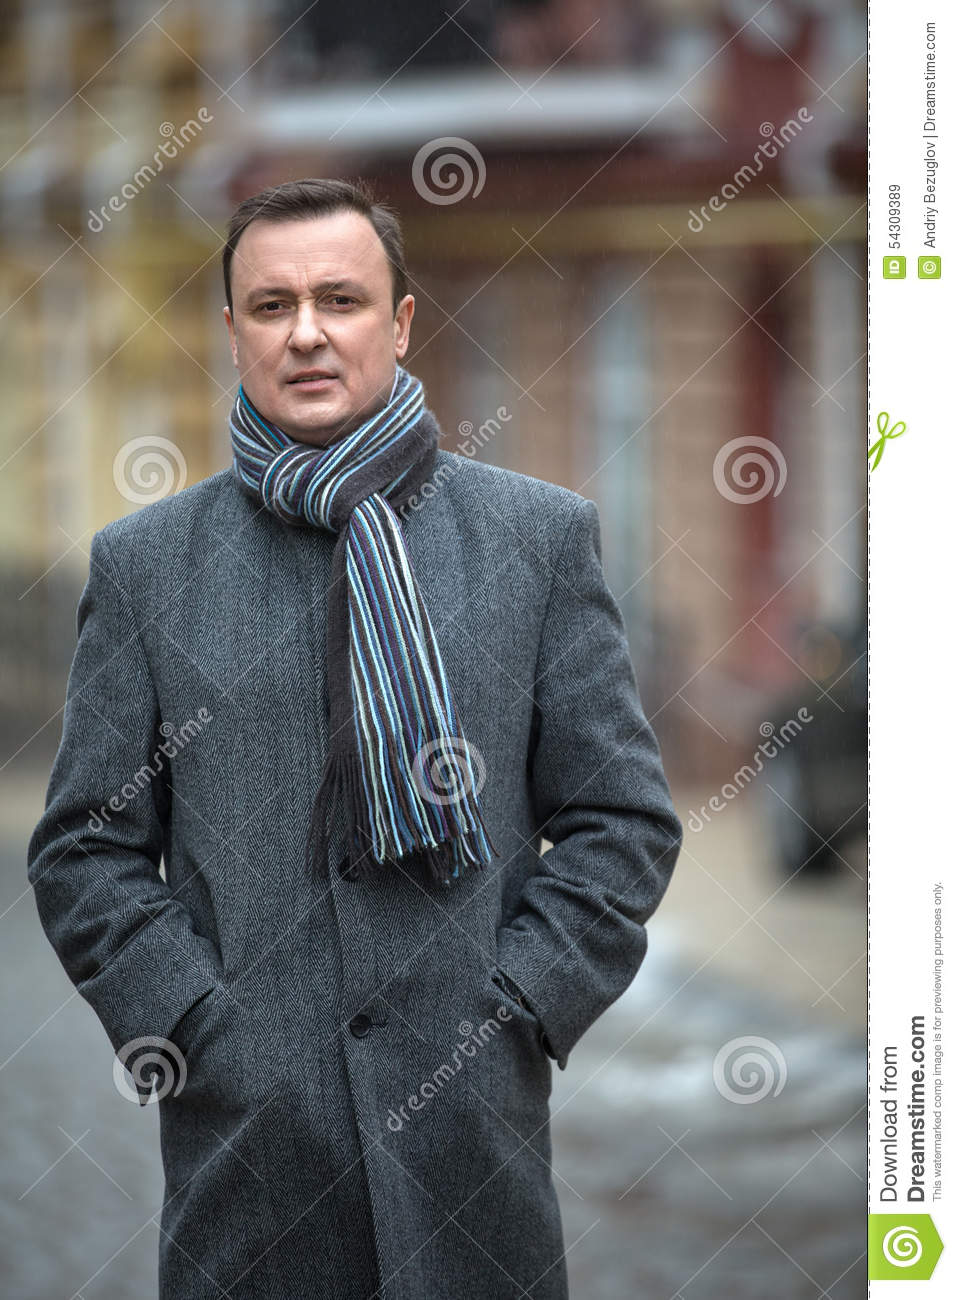 Stylish man in a gray coat with scraft on the